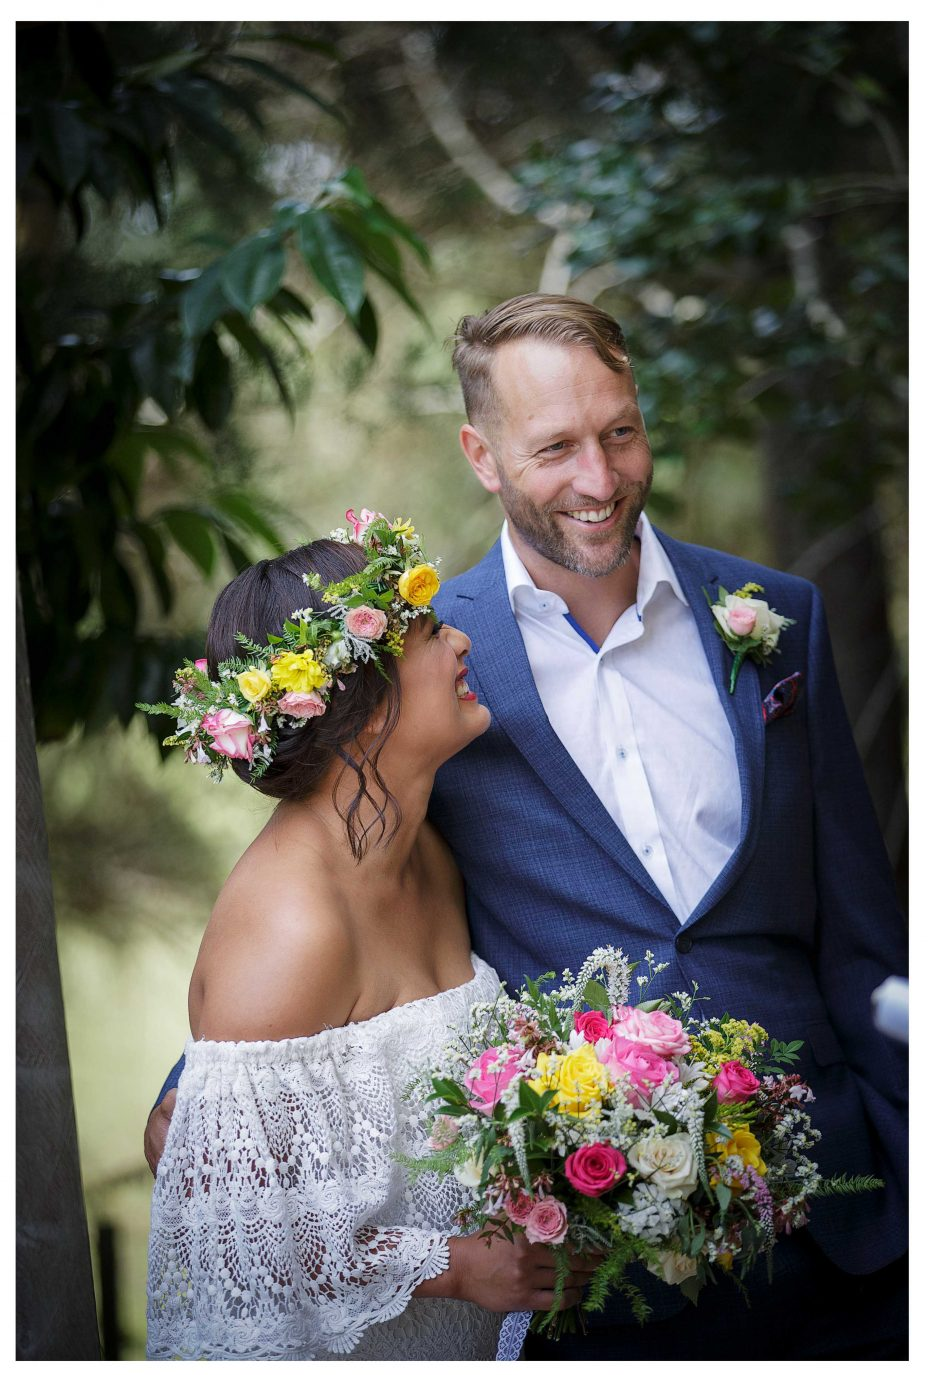 Bride with lace wedding dress and flower crown look lovingly at groom in blue suit gaze into each others eyes, outdoor wedding ceremony, Kumeu Valley Estate